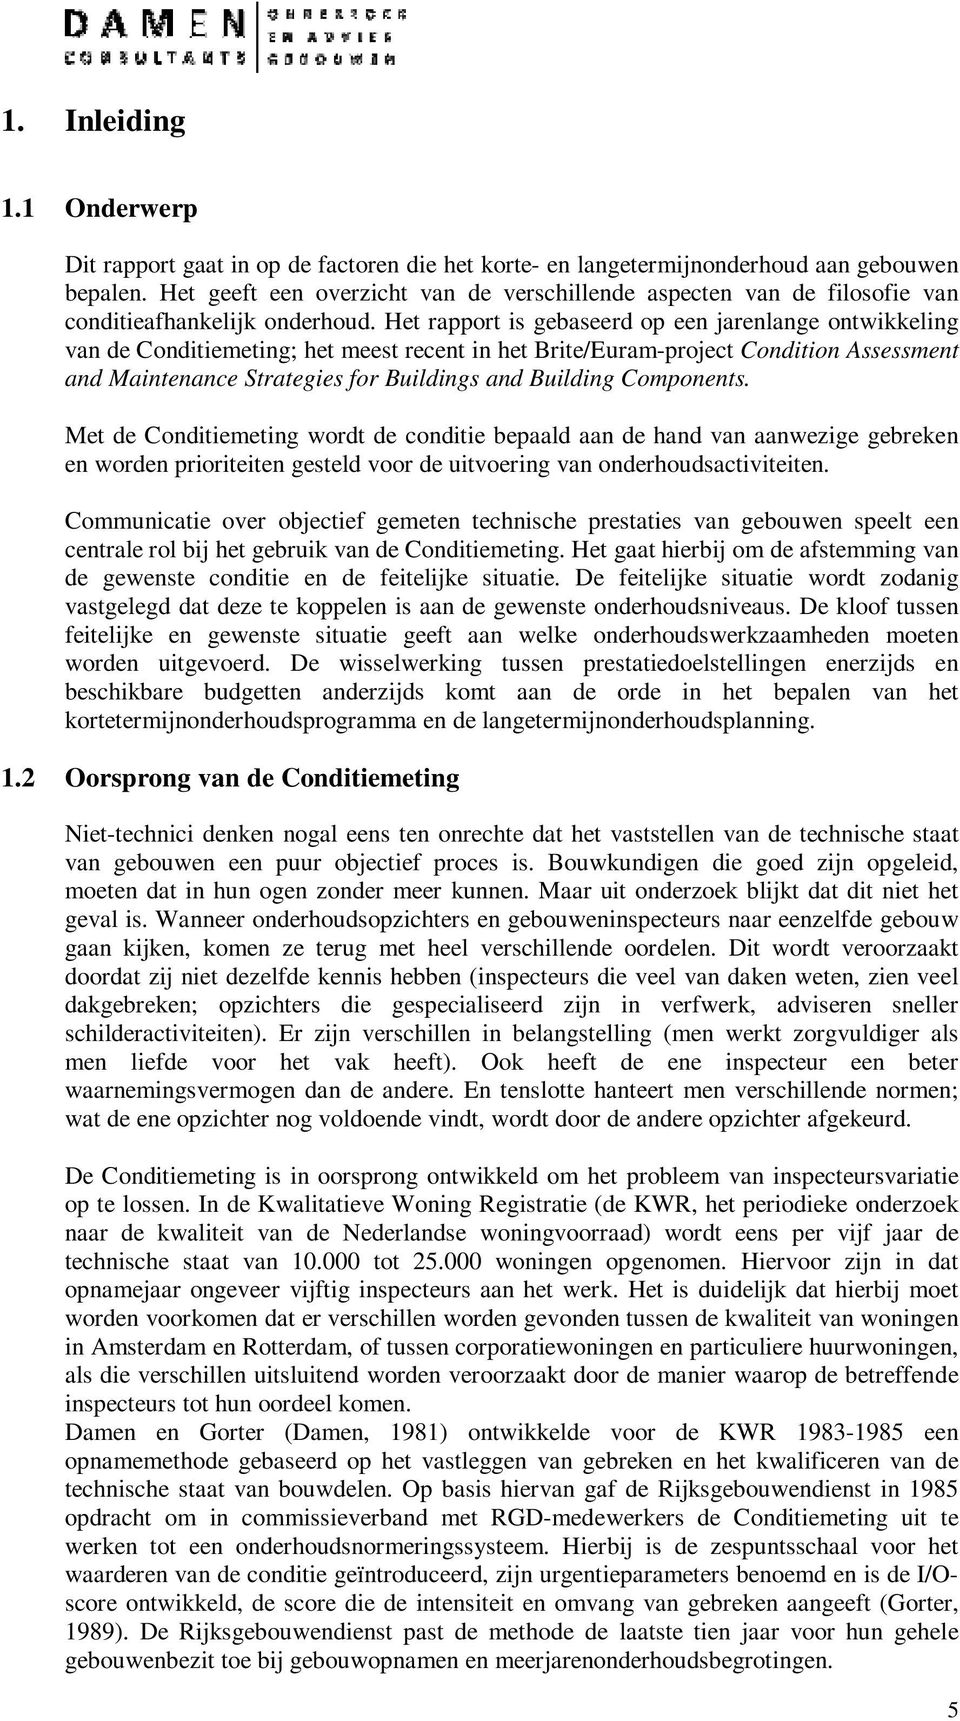 Het rapport is gebaseerd op een jarenlange ontwikkeling van de Conditiemeting; het meest recent in het Brite/Euram-project Condition Assessment and Maintenance Strategies for Buildings and Building